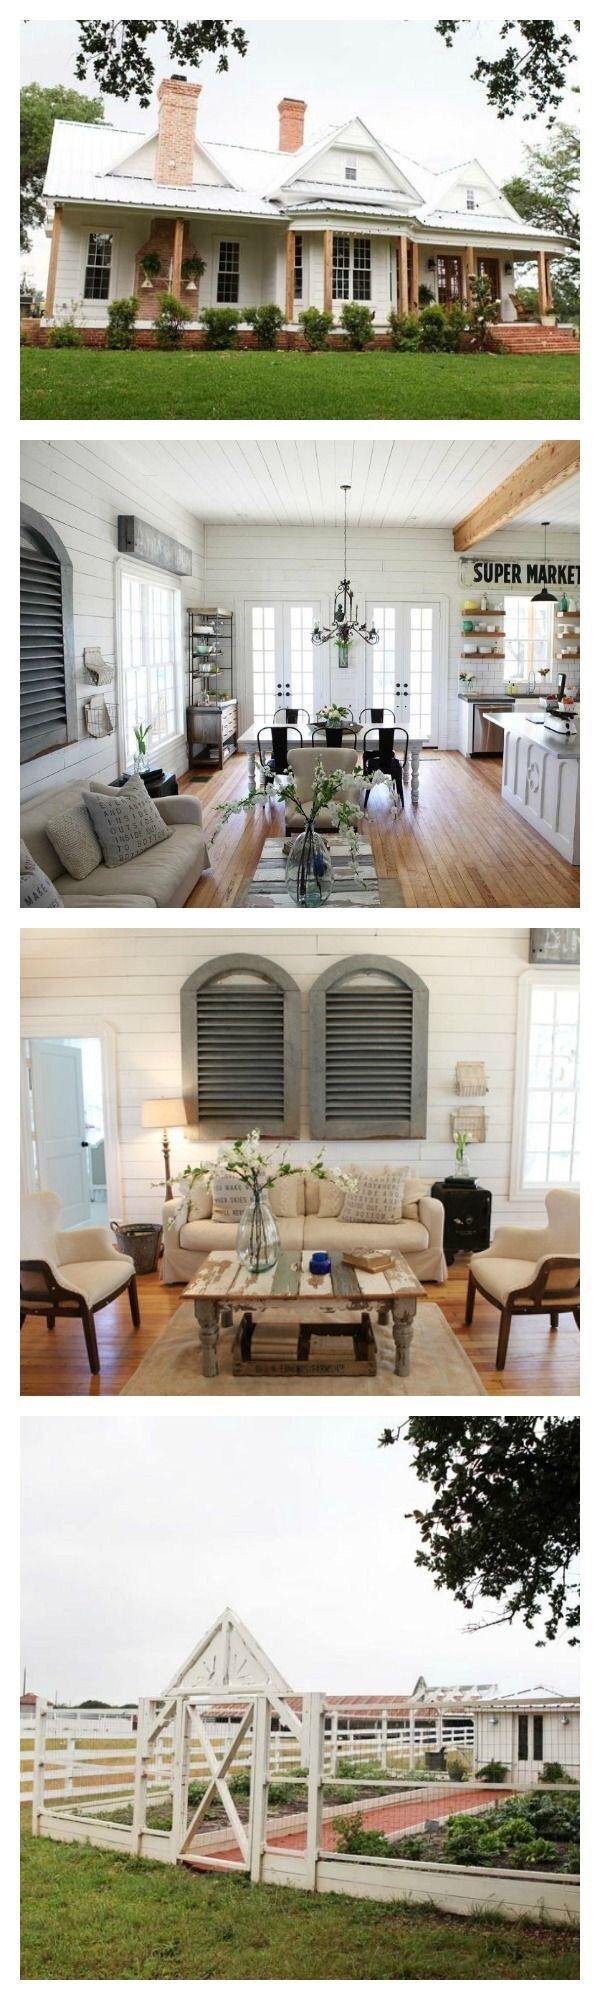 victoria magazine low country style - google search | our new